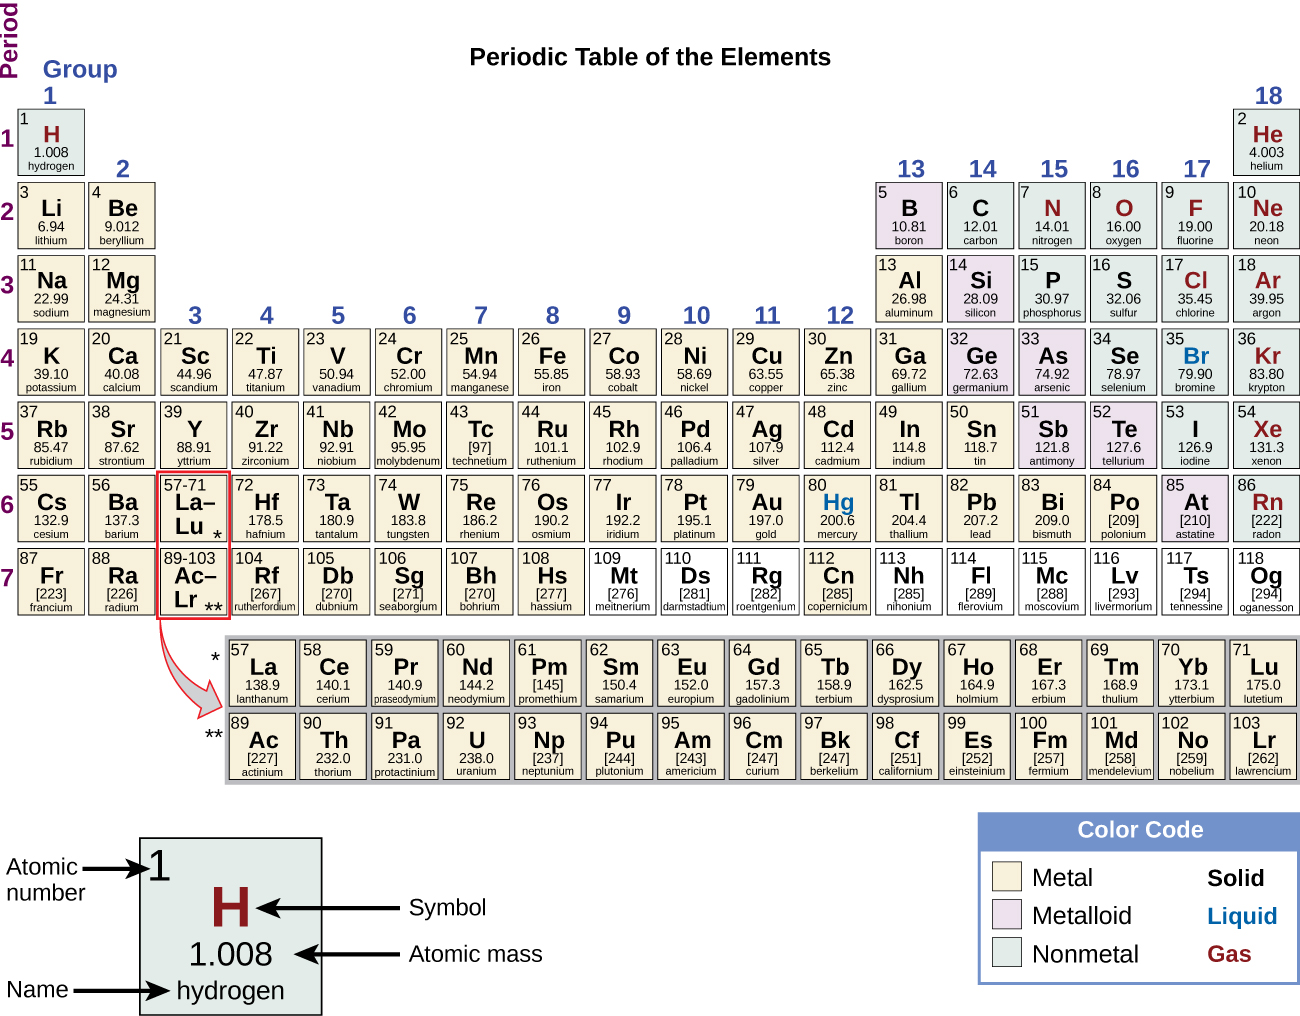 """The Periodic Table of Elements is shown. The 18 columns are labeled """"Group"""" and the 7 rows are labeled """"Period."""" Below the table to the right is a box labeled """"Color Code"""" with different colors for metals, metalloids, and nonmetals, as well as solids, liquids, and gases. To the left of this box is an enlarged picture of the upper-left most box on the table. The number 1 is in its upper-left hand corner and is labeled """"Atomic number."""" The letter """"H"""" is in the middle in red indicating that it is a gas. It is labeled """"Symbol."""" Below that is the number 1.008 which is labeled """"Atomic Mass."""" Below that is the word hydrogen which is labeled """"name."""" The color of the box indicates that it is a nonmetal. Each element will be described in this order: atomic number; name; symbol; whether it is a metal, metalloid, or nonmetal; whether it is a solid, liquid, or gas; and atomic mass. Beginning at the top left of the table, or period 1, group 1, is a box containing """"1; hydrogen; H; nonmetal; gas; and 1.008."""" There is only one other element box in period 1, group 18, which contains """"2; helium; H e; nonmetal; gas; and 4.003."""" Period 2, group 1 contains """"3; lithium; L i; metal; solid; and 6.94"""" Group 2 contains """"4; beryllium; B e; metal; solid; and 9.012."""" Groups 3 through 12 are skipped and group 13 contains """"5; boron; B; metalloid; solid; 10.81."""" Group 14 contains """"6; carbon; C; nonmetal; solid; and 12.01."""" Group 15 contains """"7; nitrogen; N; nonmetal; gas; and 14.01."""" Group 16 contains """"8; oxygen; O; nonmetal; gas; and 16.00."""" Group 17 contains """"9; fluorine; F; nonmetal; gas; and 19.00."""" Group 18 contains """"10; neon; N e; nonmetal; gas; and 20.18."""" Period 3, group 1 contains """"11; sodium; N a; metal; solid; and 22.99."""" Group 2 contains """"12; magnesium; M g; metal; solid; and 24.31."""" Groups 3 through 12 are skipped again in period 3 and group 13 contains """"13; aluminum; A l; metal; solid; and 26.98."""" Group 14 contains """"14; silicon; S i; metalloid; solid; and 28.09."""" Group 15 contains """"15"""